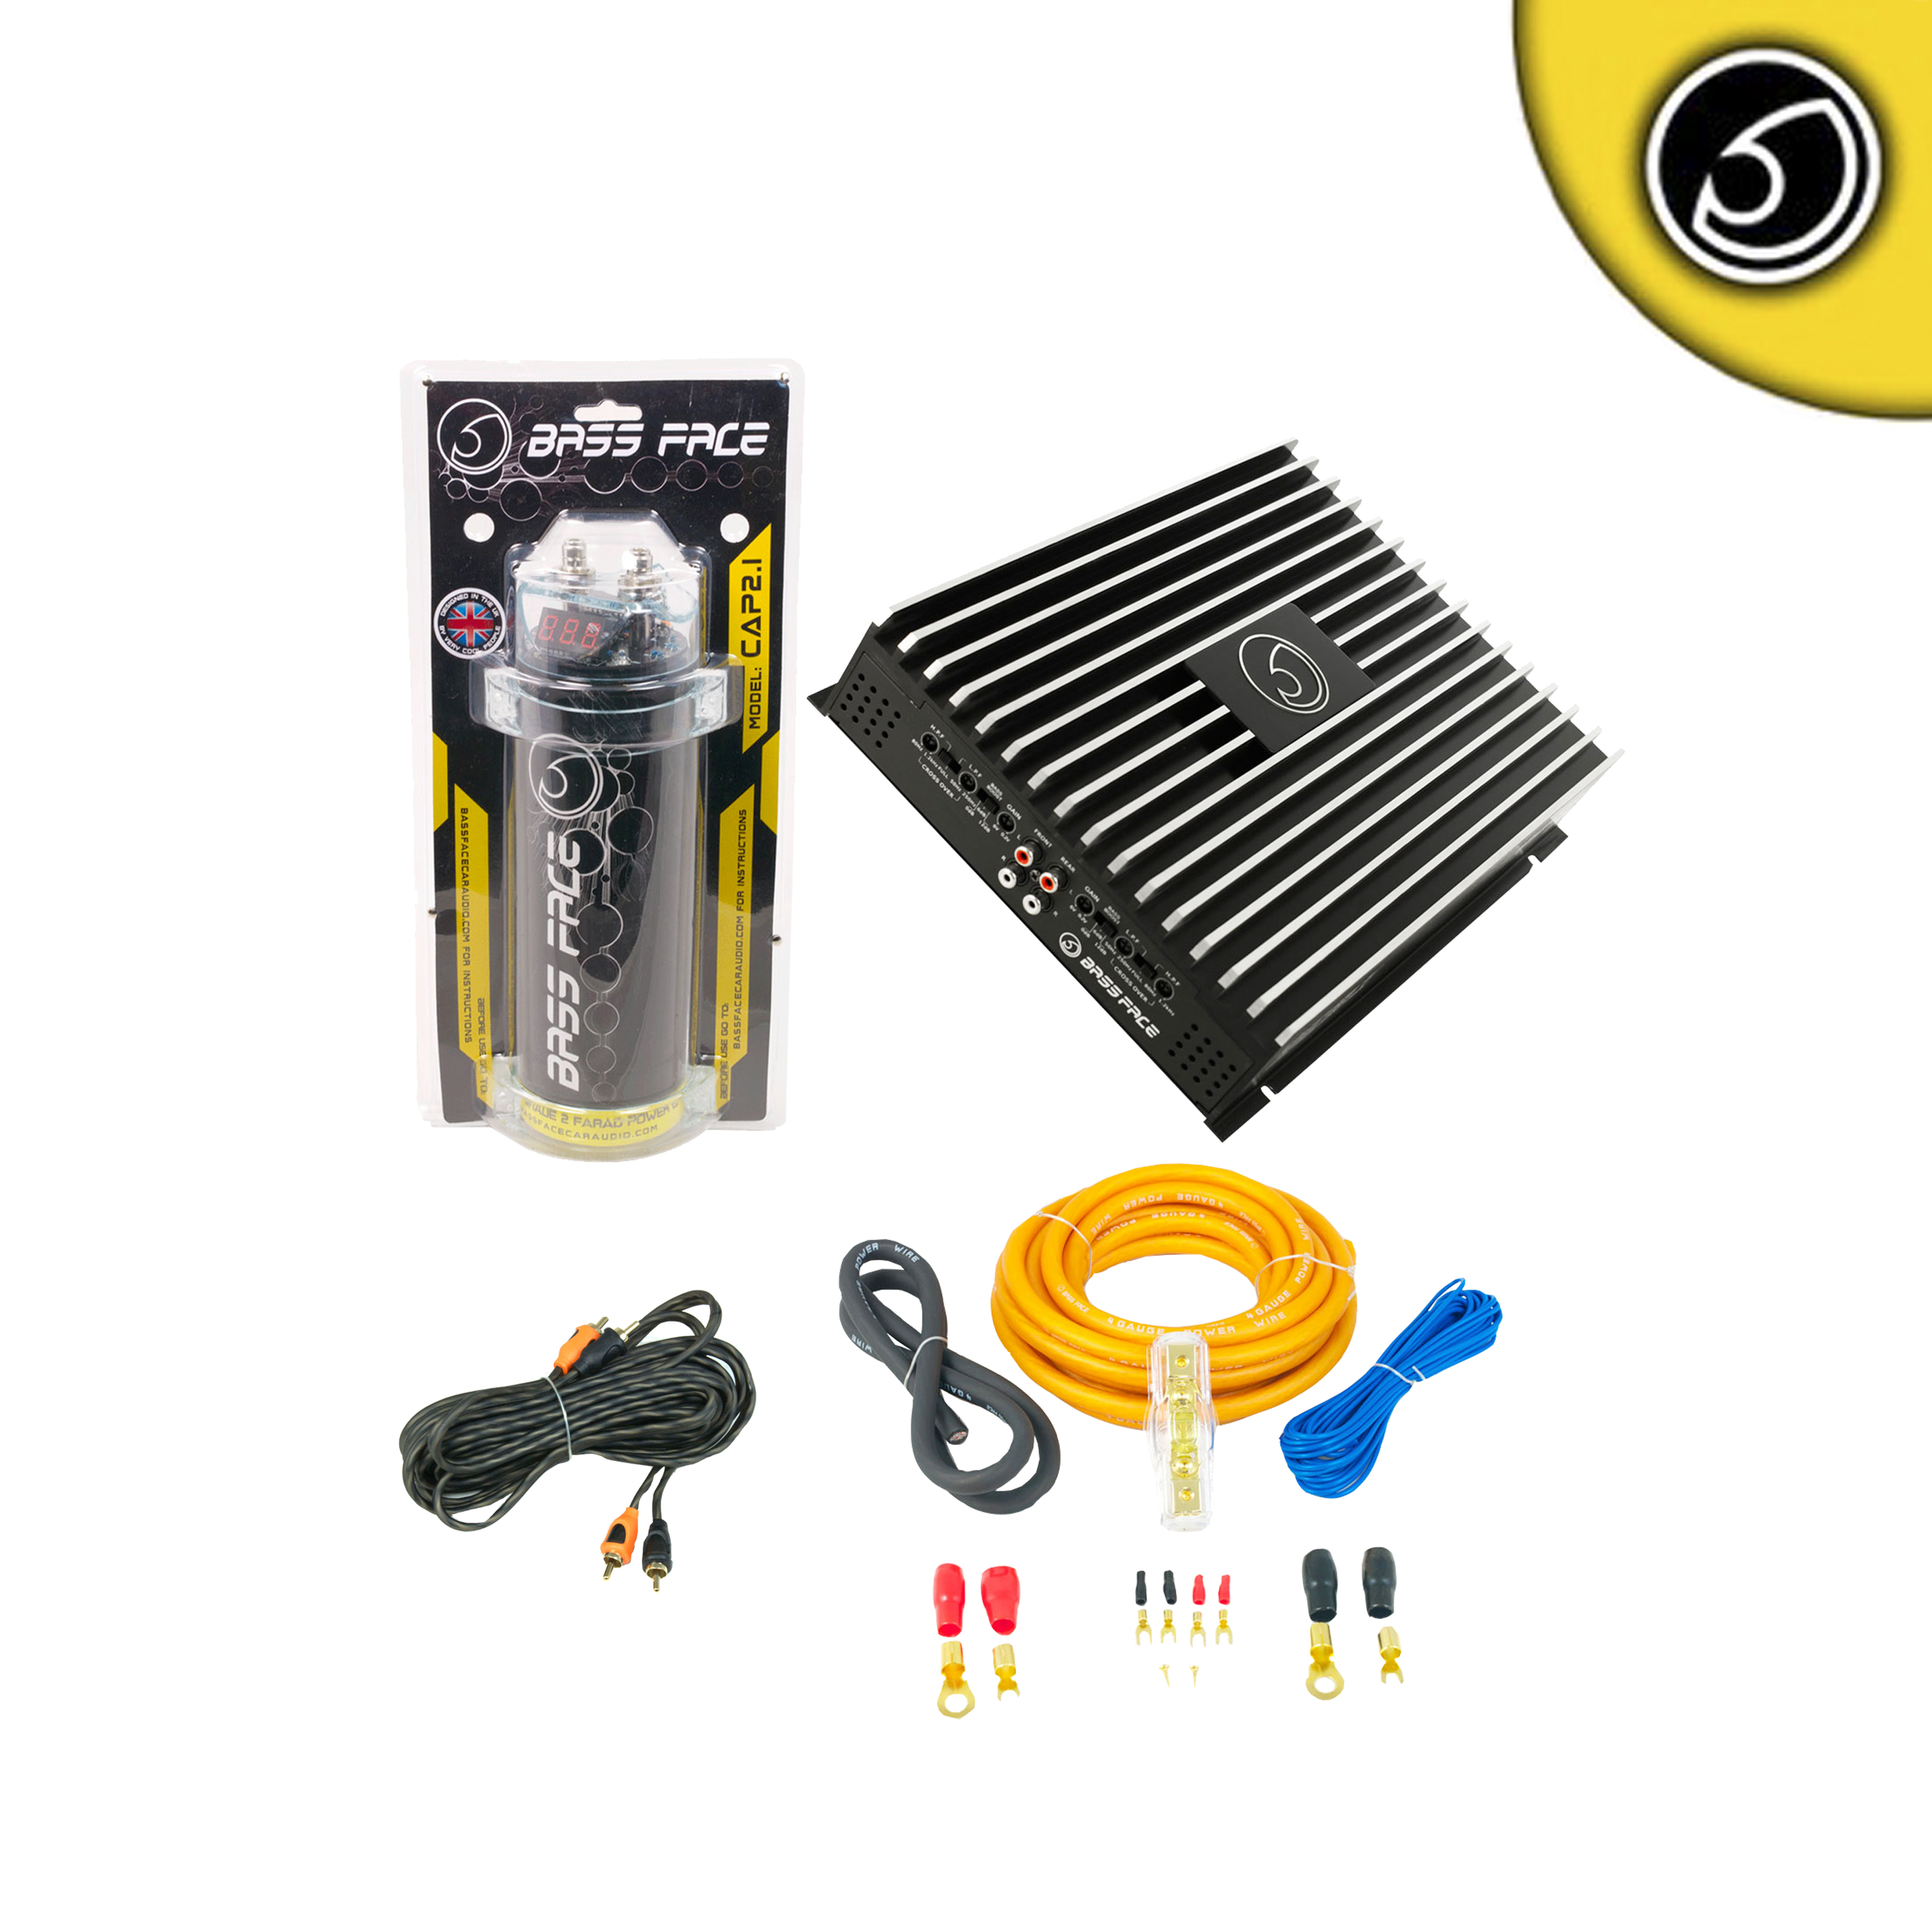 Thompsons Ltd Bassface Db41 1600w Car Audio Amp Amplifier 2 Wiring Kits For Amps Farad Power Cap Kit